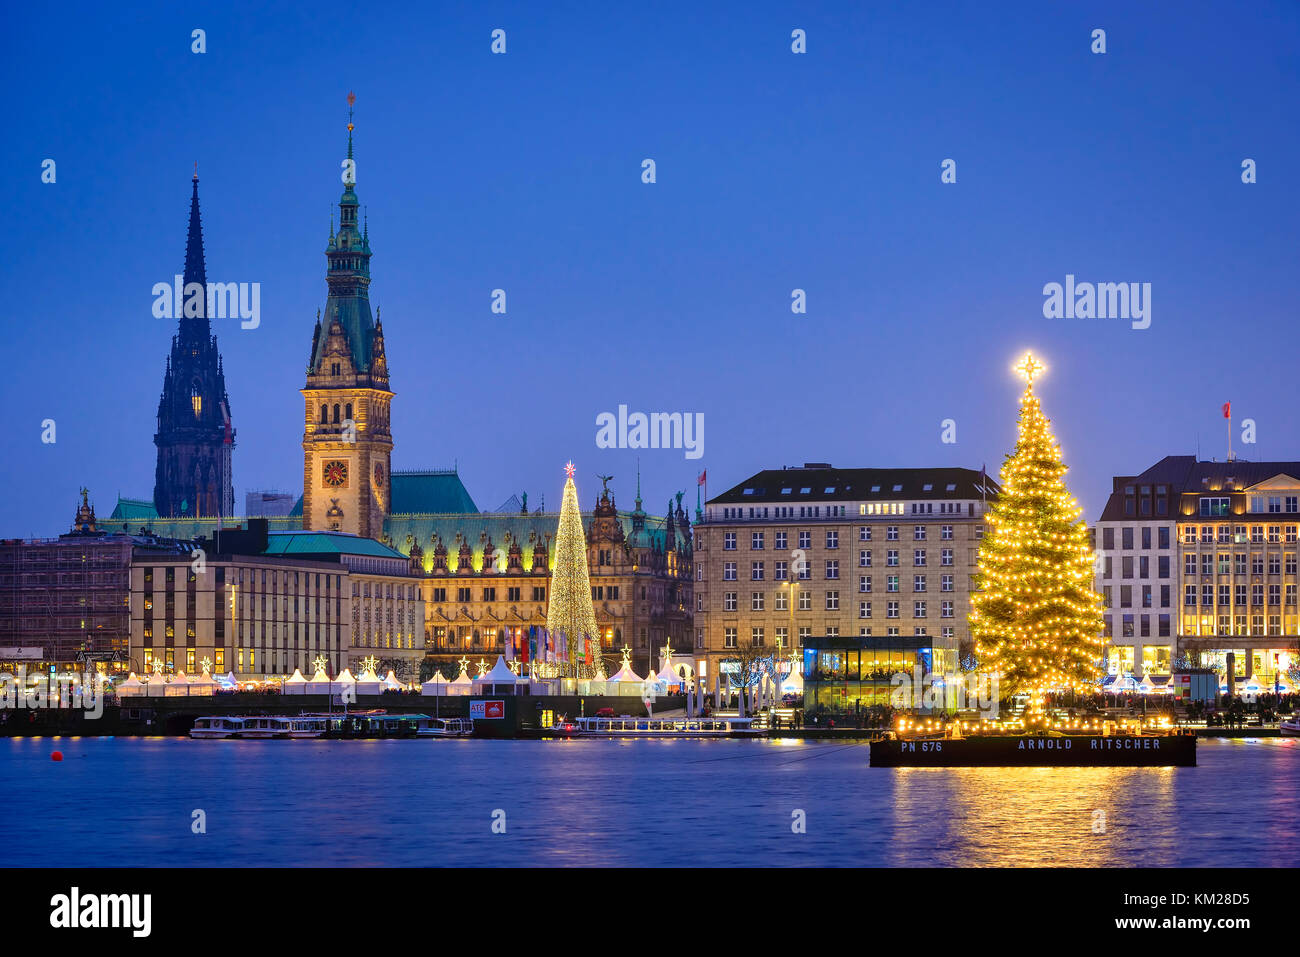 weihnachtsbaum auf der binnenalster in hamburg deutschland europa stockfoto bild 167236977. Black Bedroom Furniture Sets. Home Design Ideas